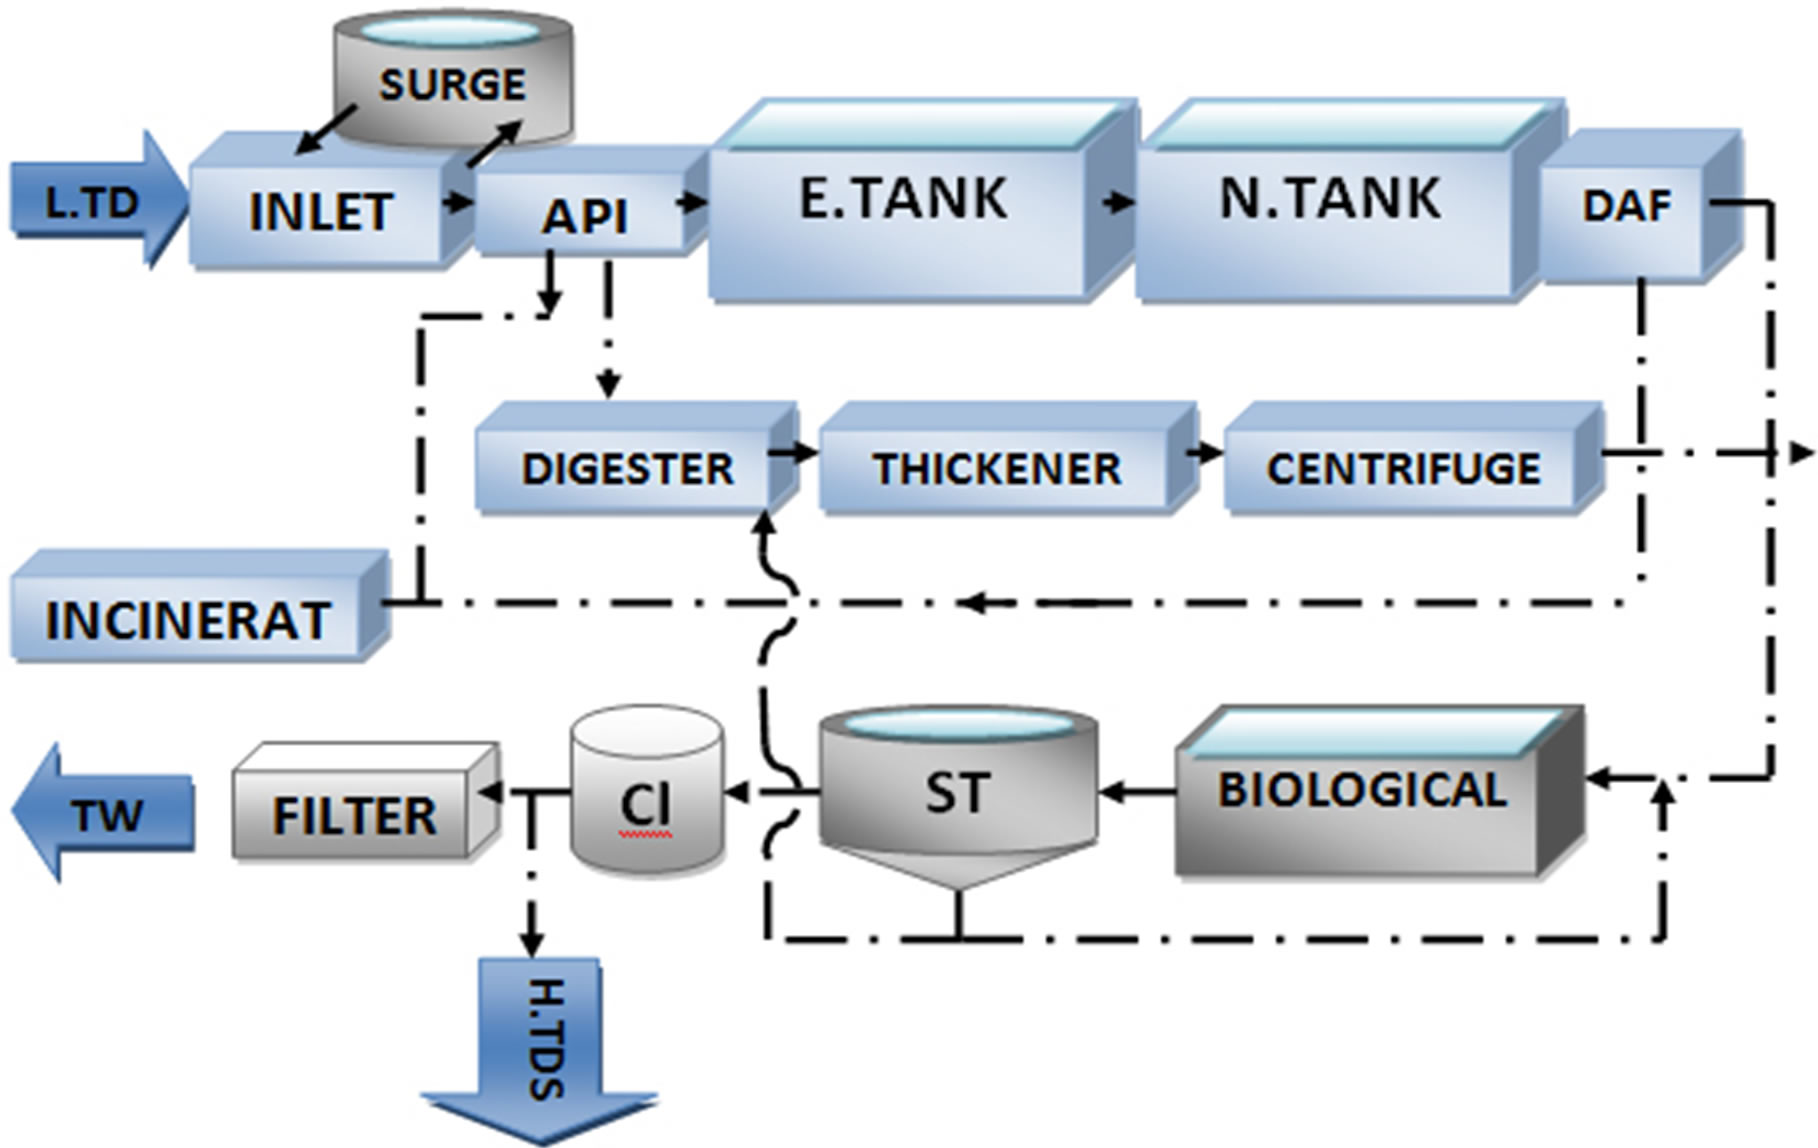 wastewater treatment plant flow diagram 2 switch light wiring simulation of low tds and biological units fajr